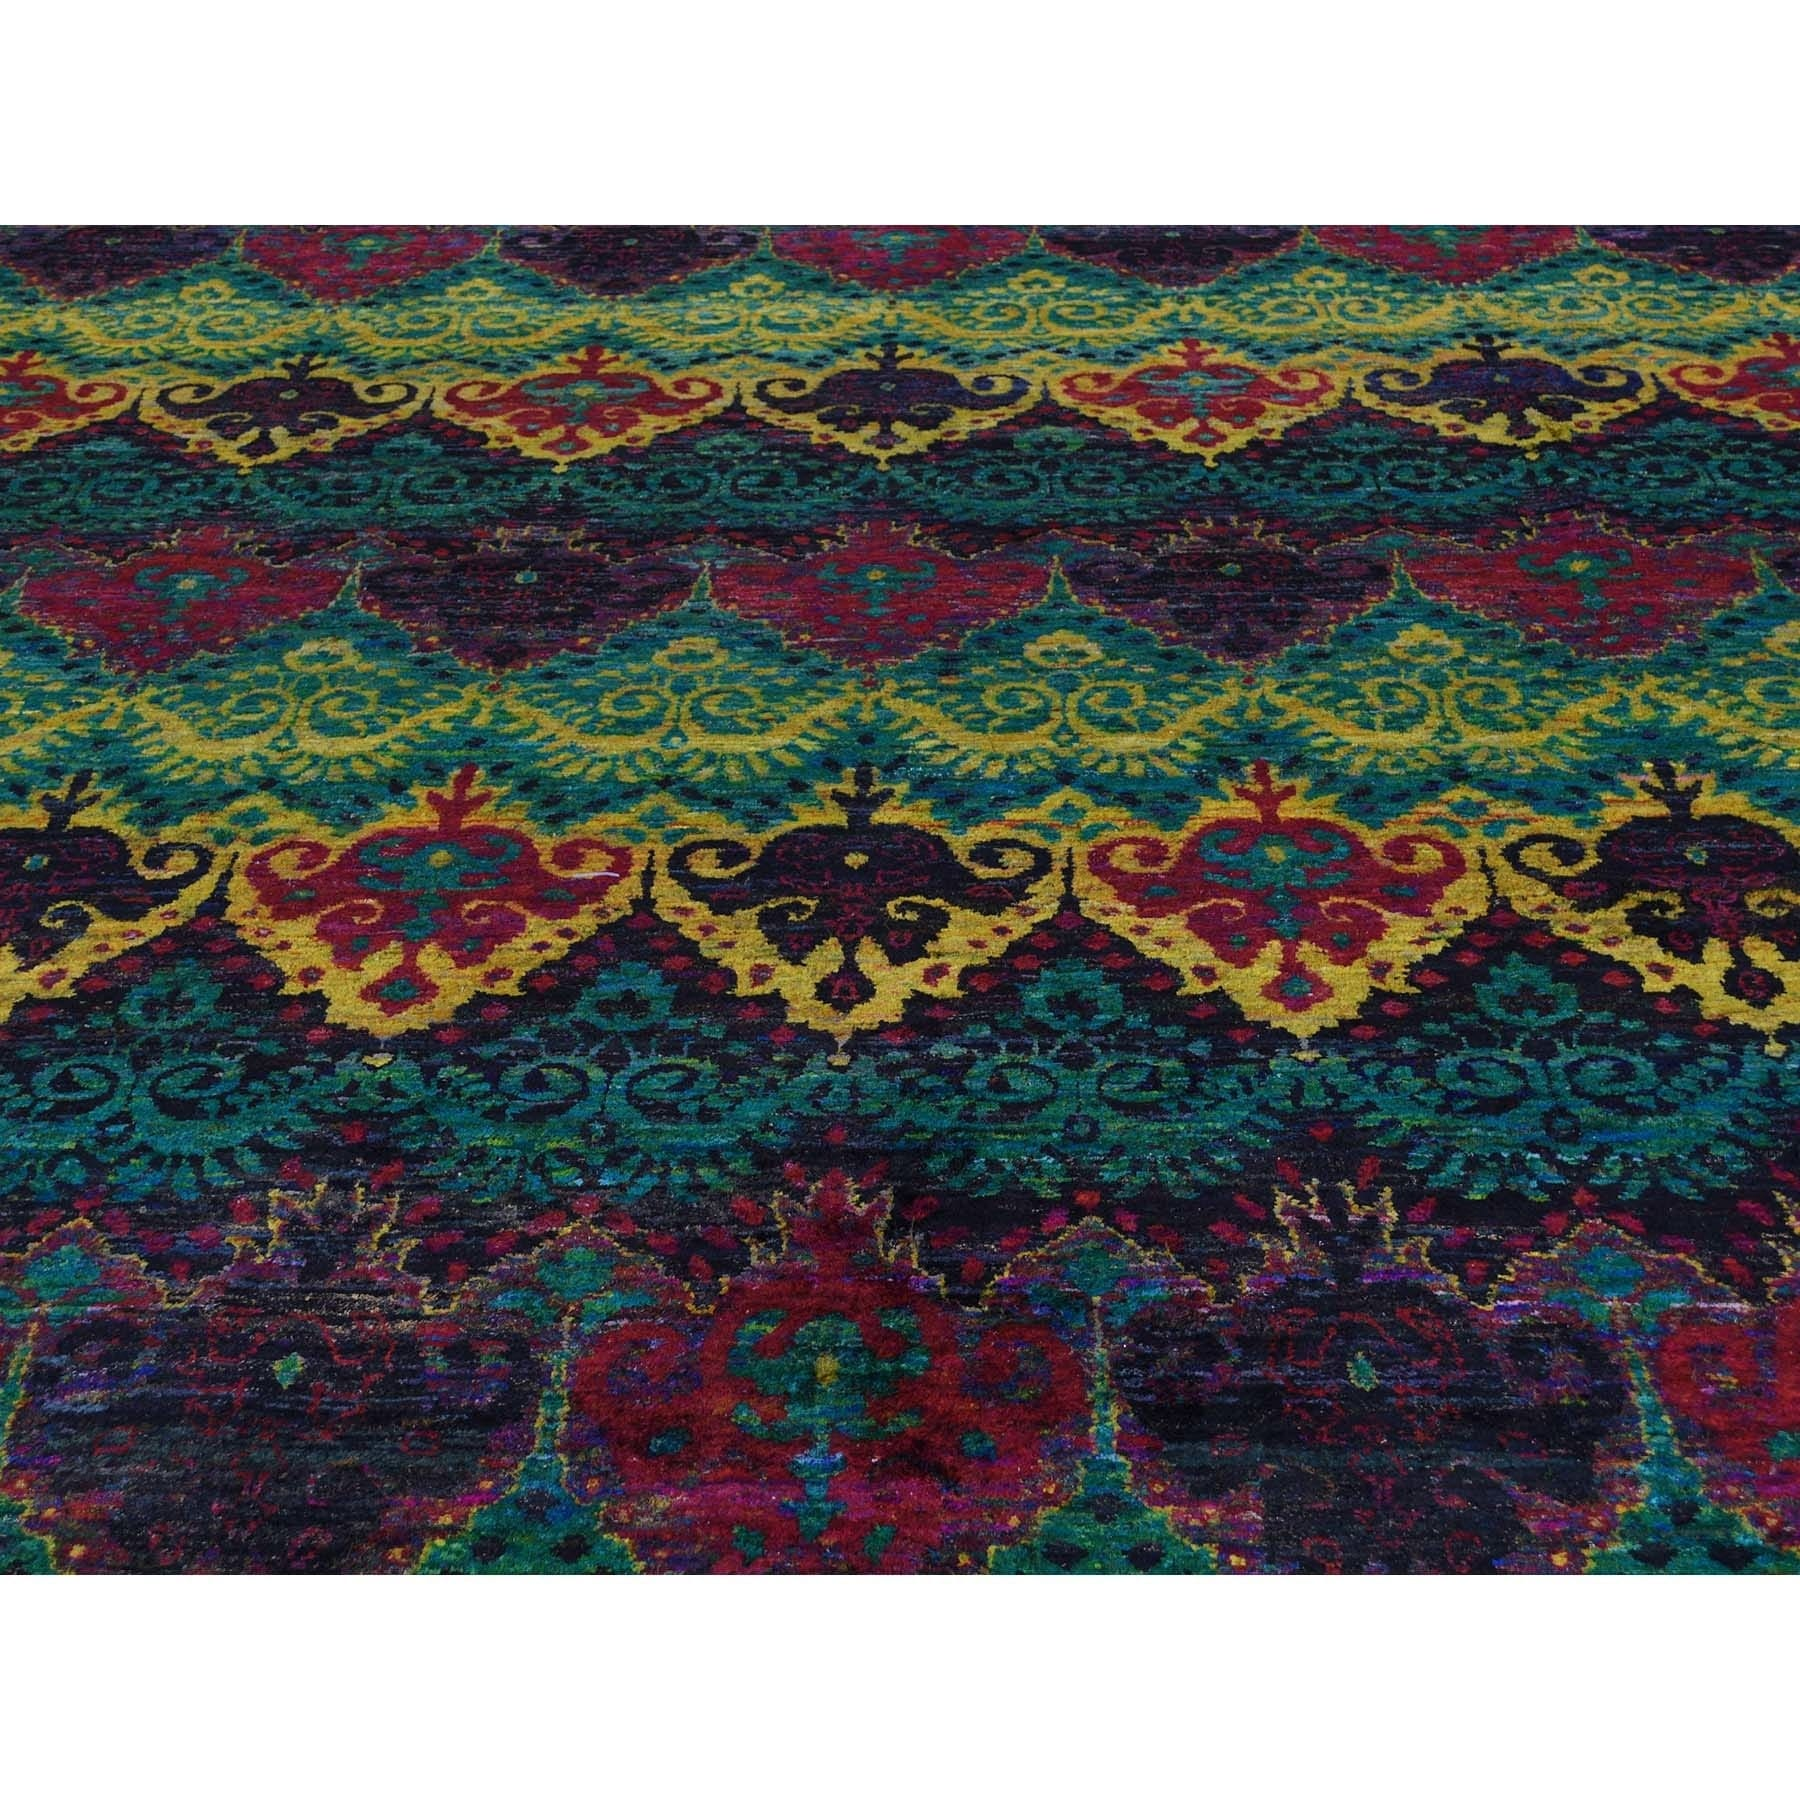 Shahbanu Rugs Sari Silk Ikat Design Hand Knotted Bright Colors Oriental Rug 9 X 12 Free Shipping Today 23422139